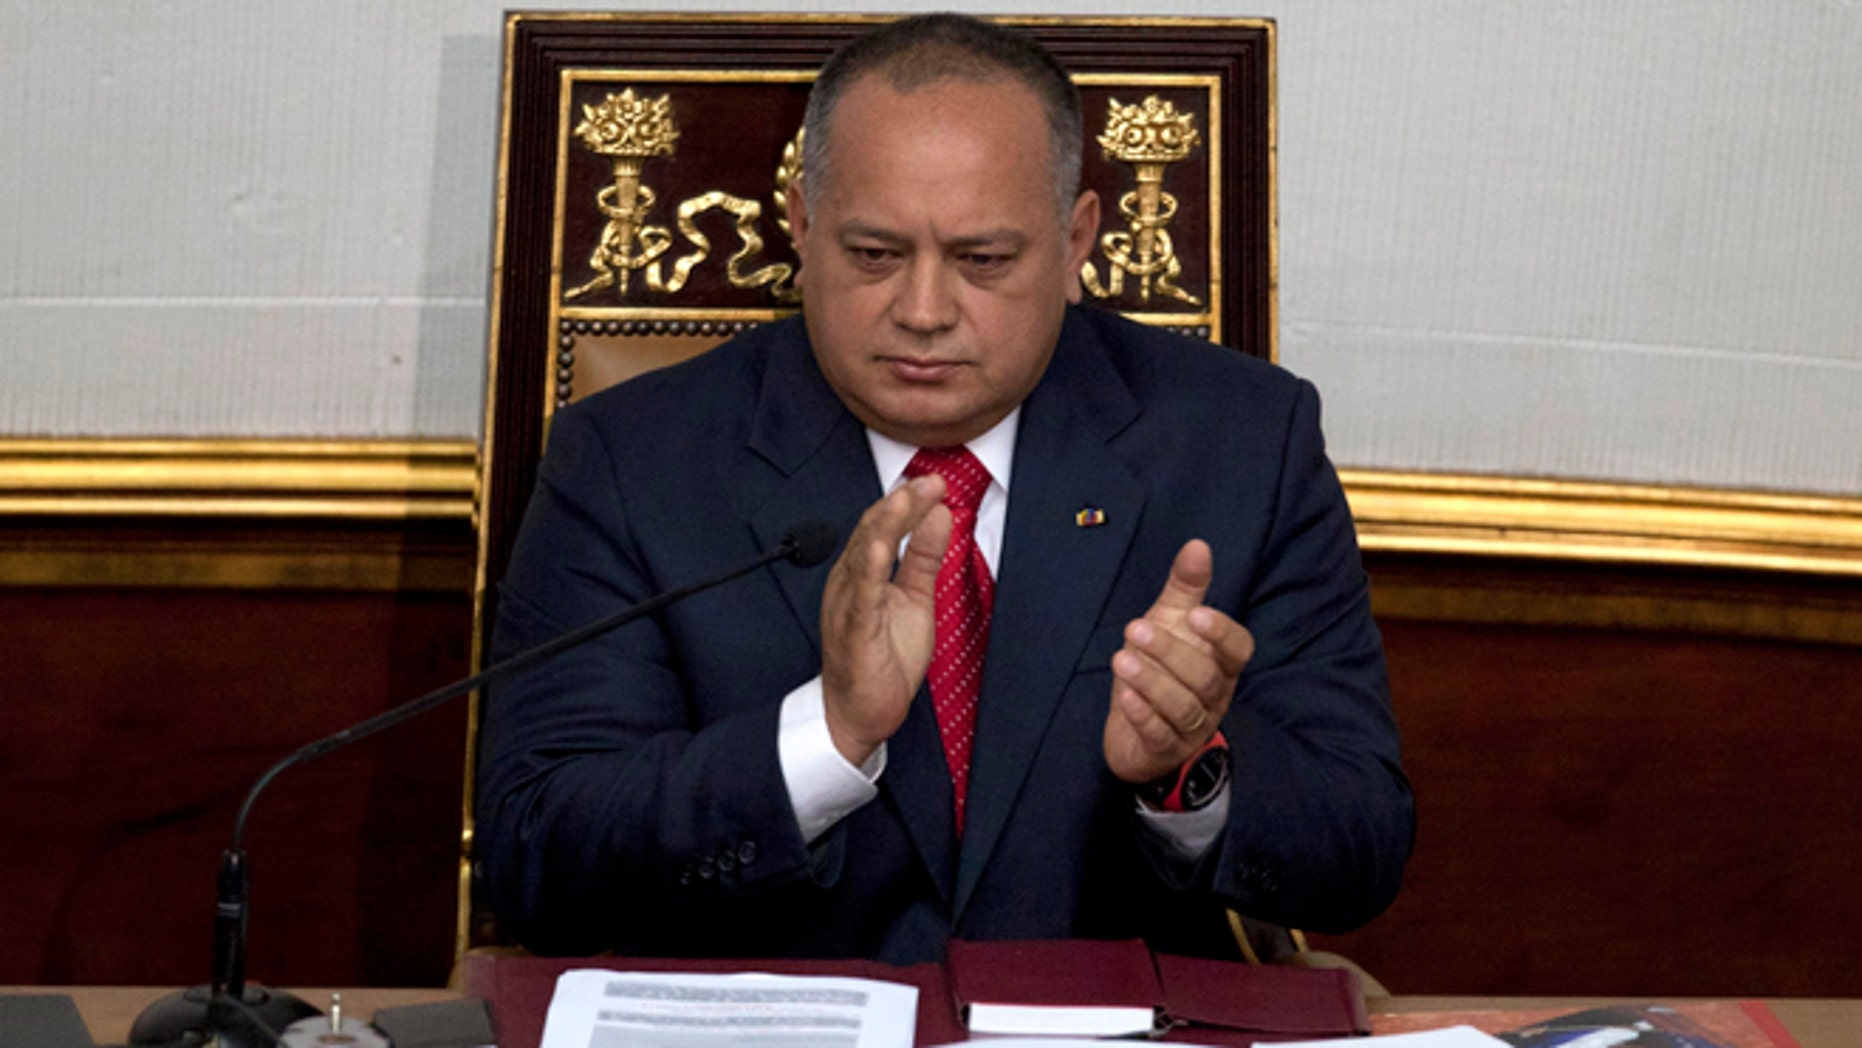 FILE - In this Jan. 5, 2013 file photo, National Assembly President Diosdado Cabello applauds before addressing the National Assembly in Caracas, Venezuela. Cabello said on Wednesday, May 13, 2015 he is asking courts to bar news executives from leaving the country while heâs suing them for alleged defamation. (AP Photo/Ariana Cubillos, File)